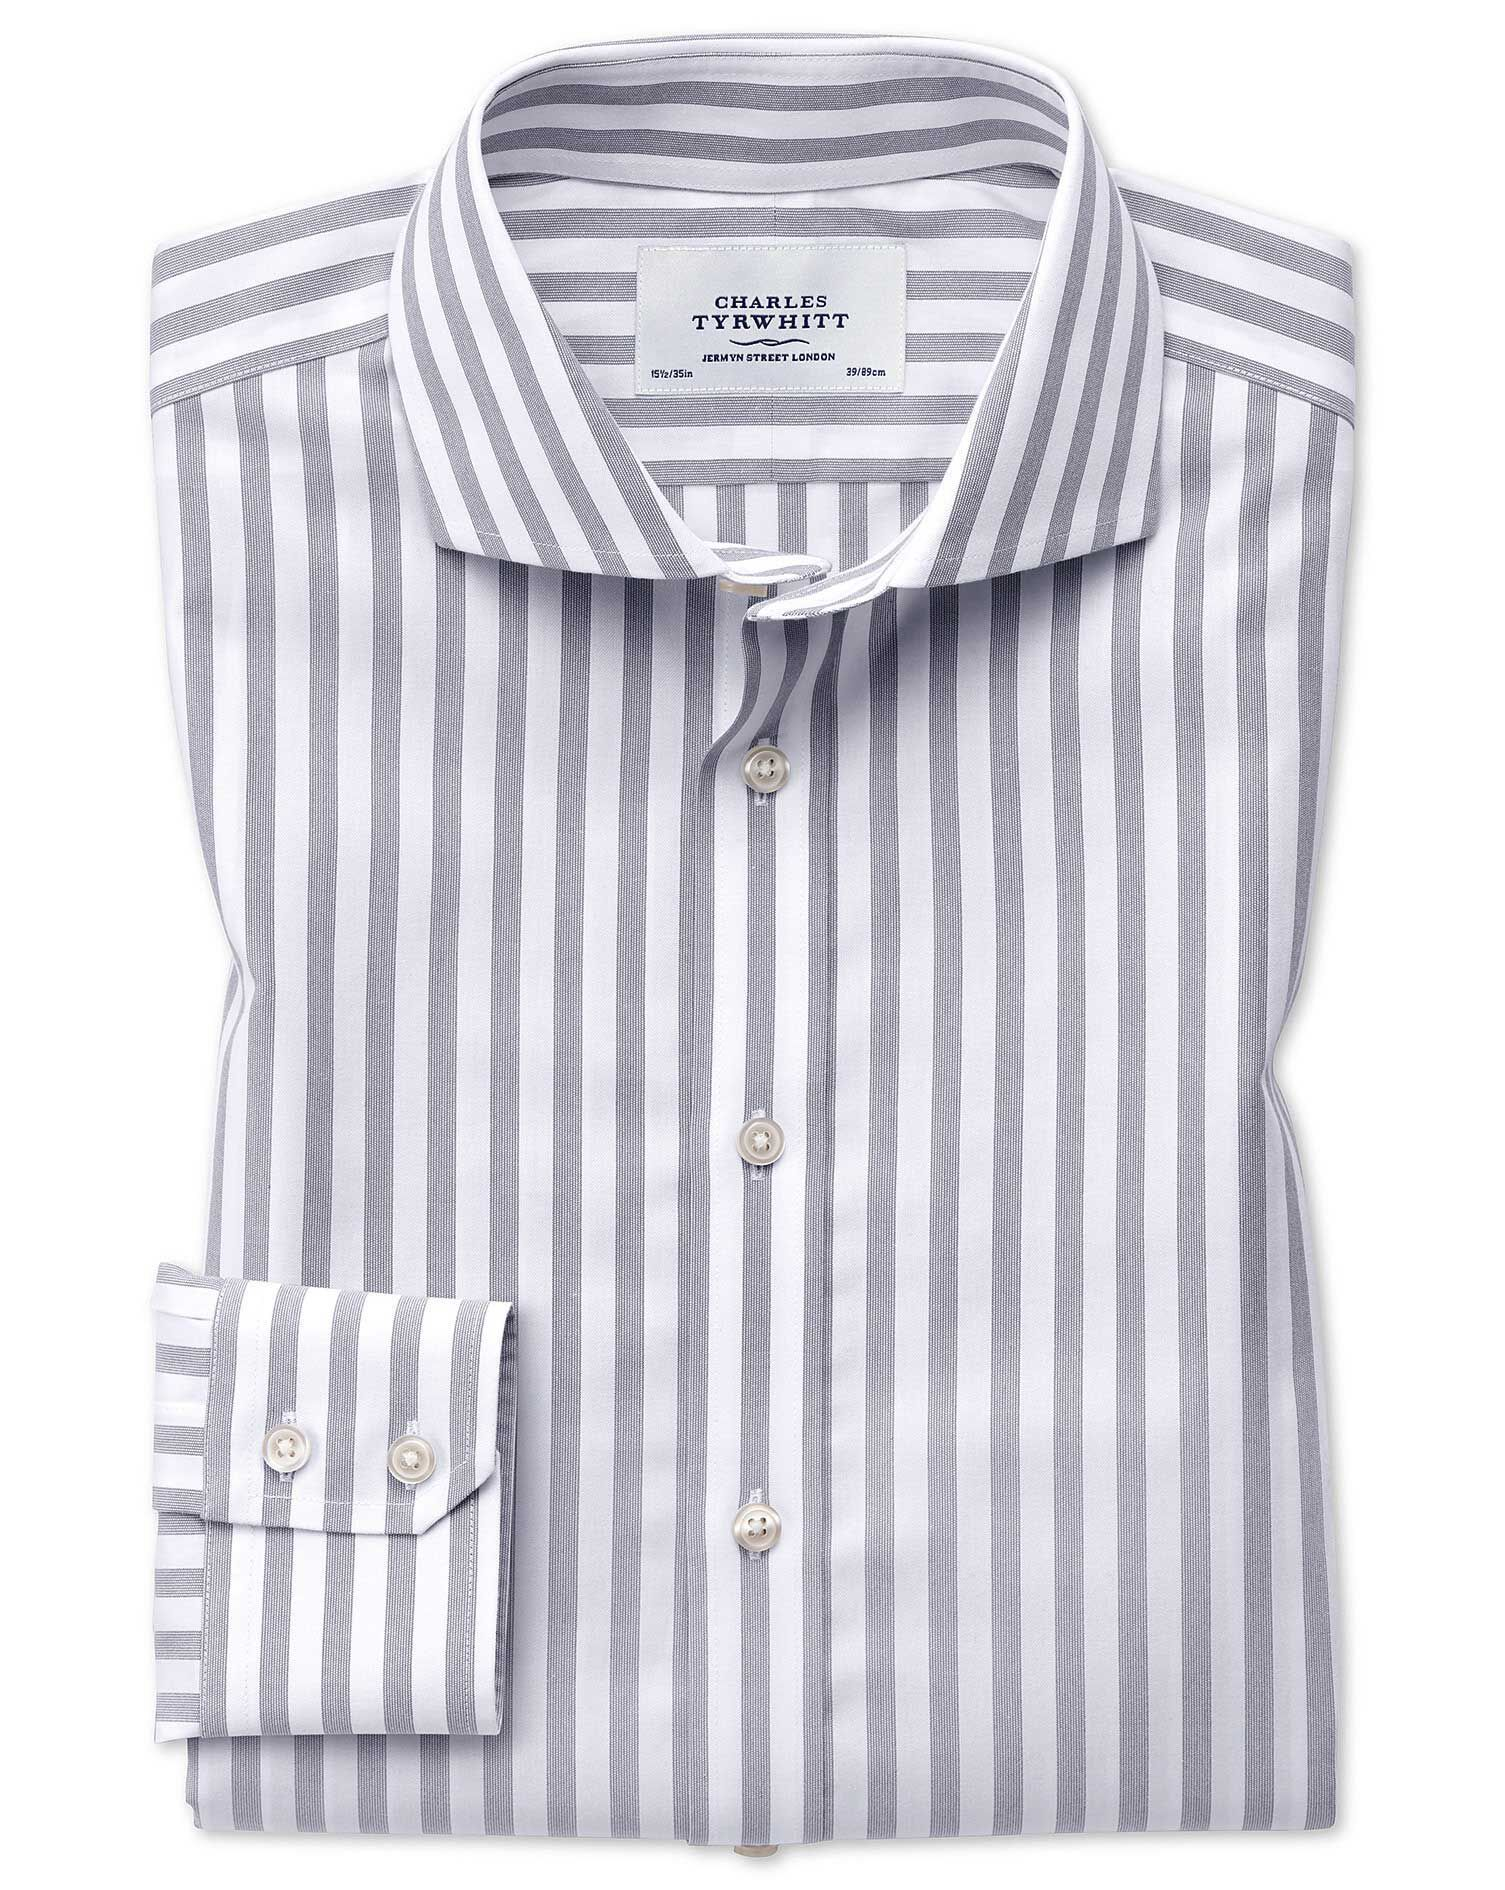 Slim Fit Cutaway Non-Iron Wide Stripe Grey Cotton Formal Shirt Single Cuff Size 16.5/34 by Charles T